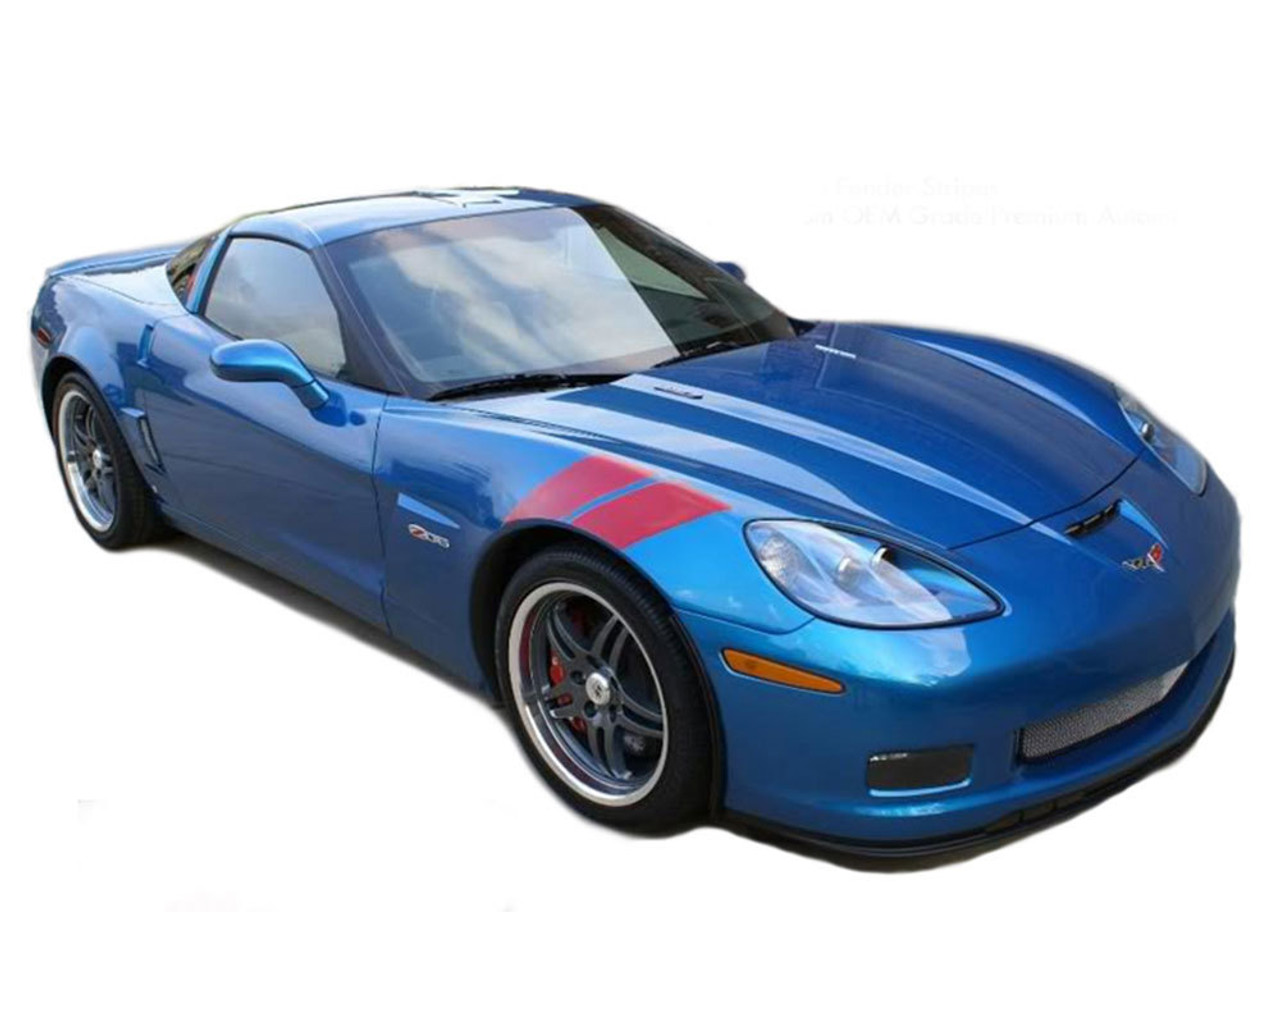 Chevy Corvette C6 2005-2013